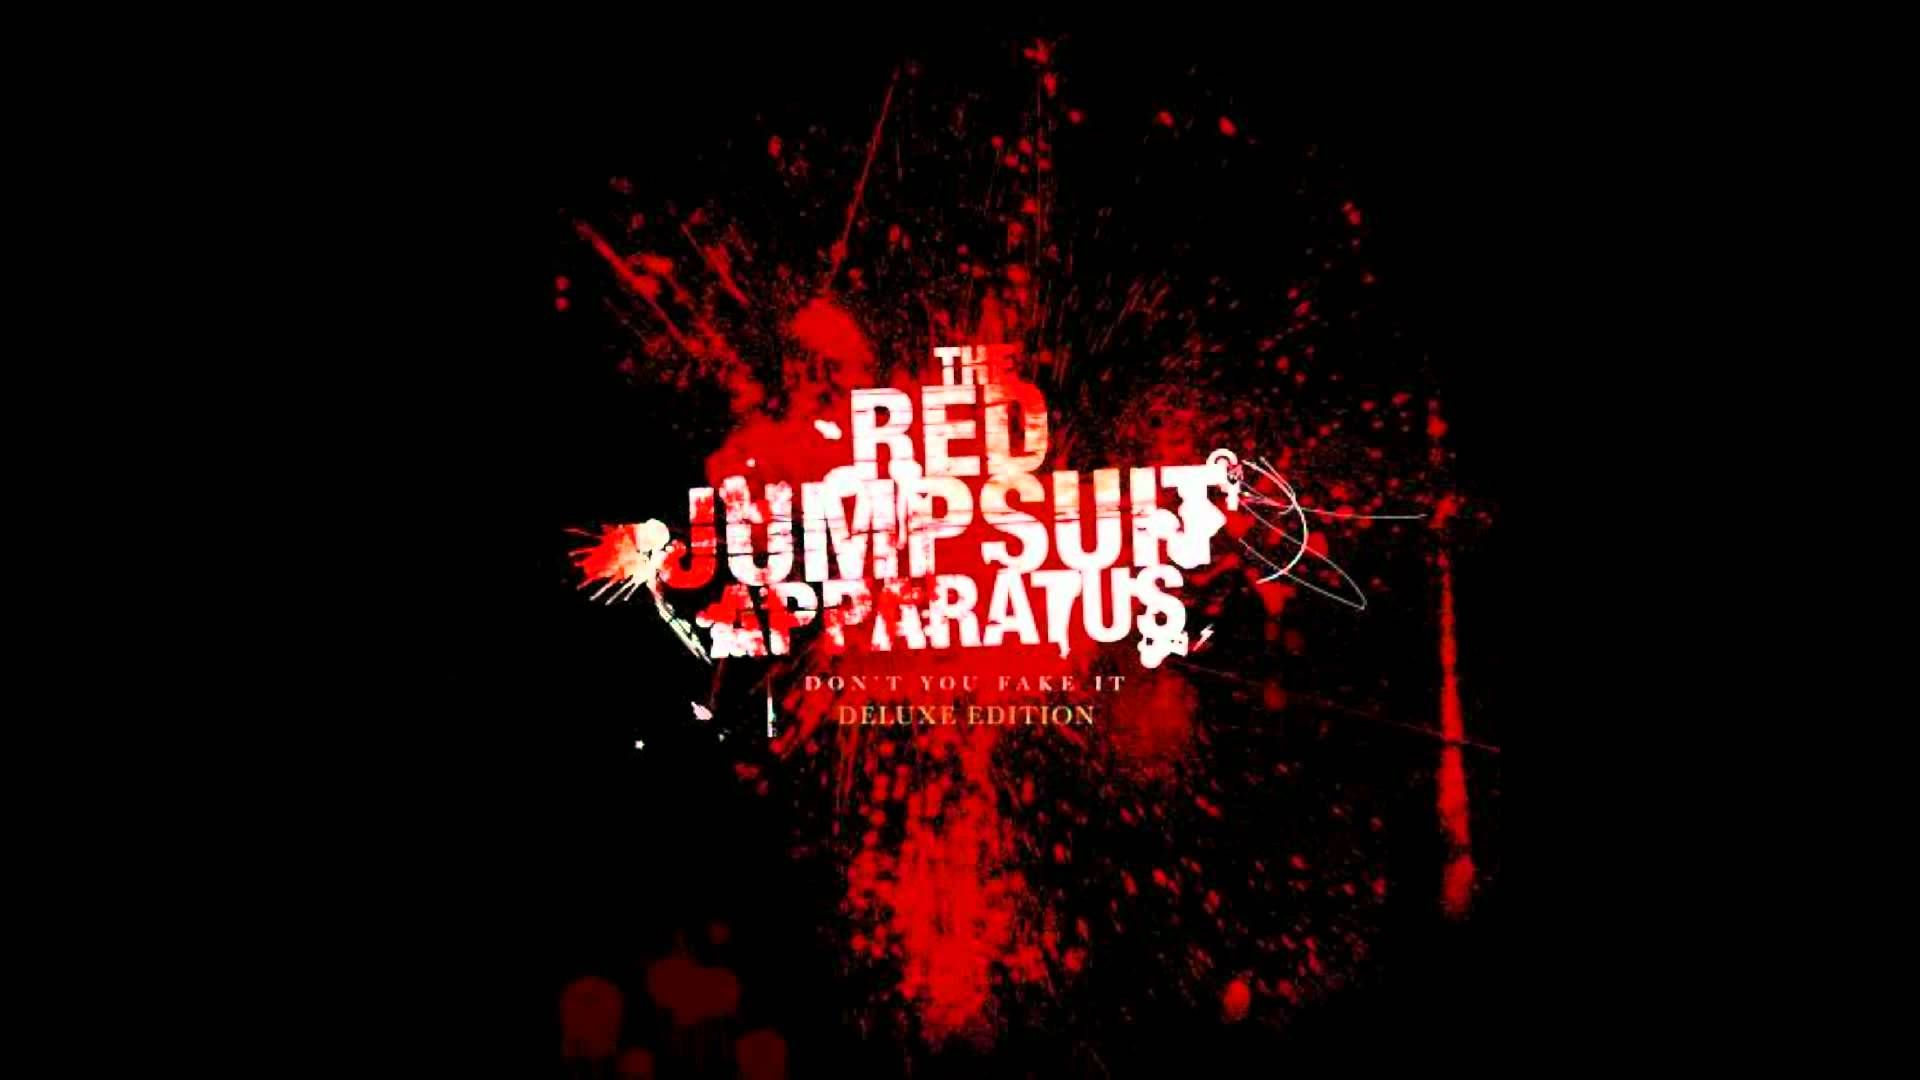 The Red Jumpsuit Apparatus Don T You Fake It Deluxe